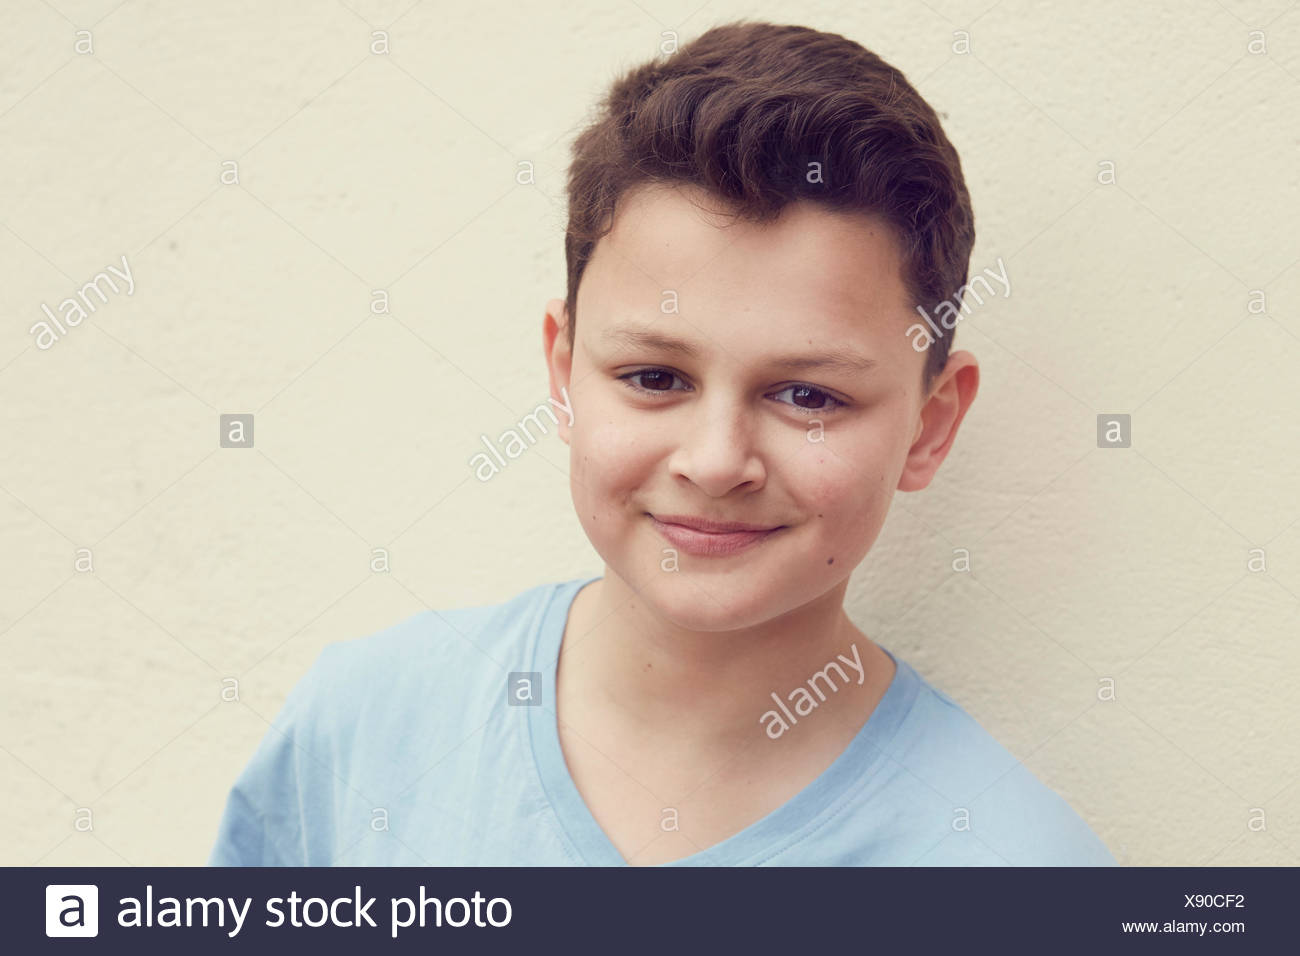 Portrait of boy in front of wall Photo Stock